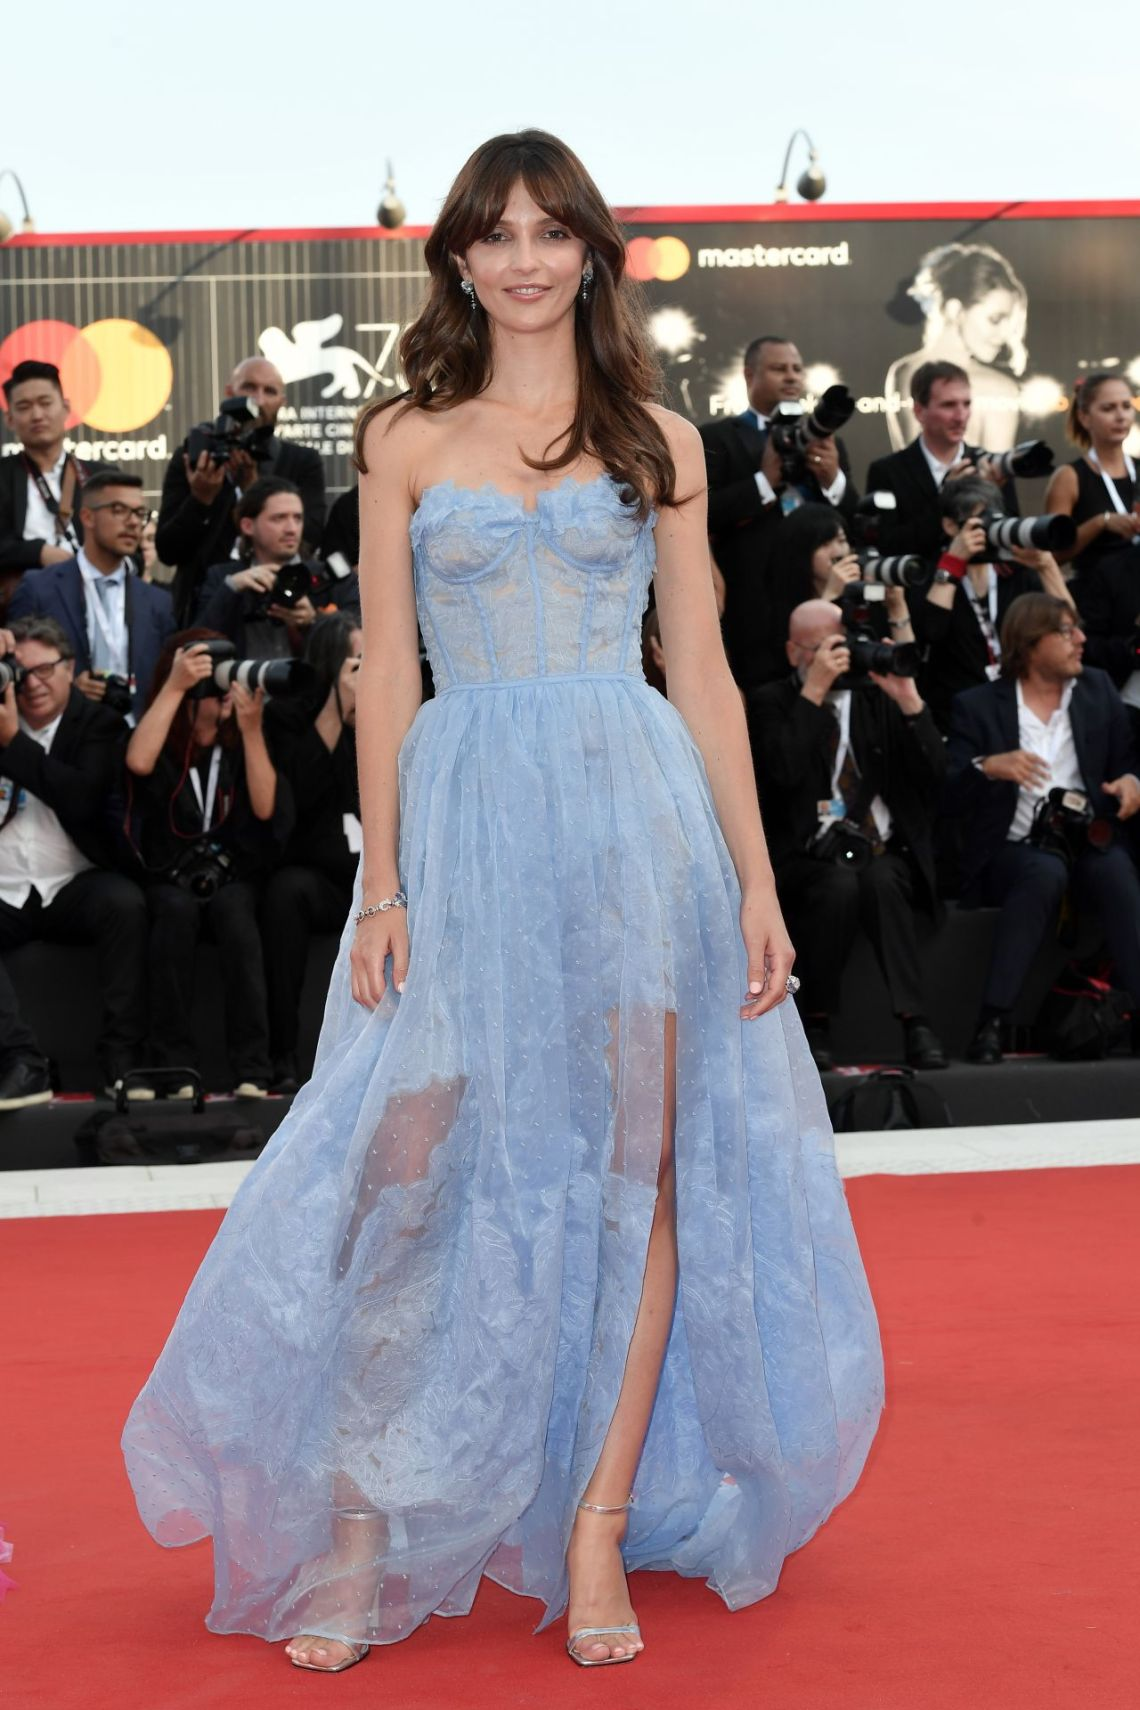 annabelle-belmondo-2018-venice-film-festival-opening-ceremony-and-first-man-red-carpet-4ermannoscervino